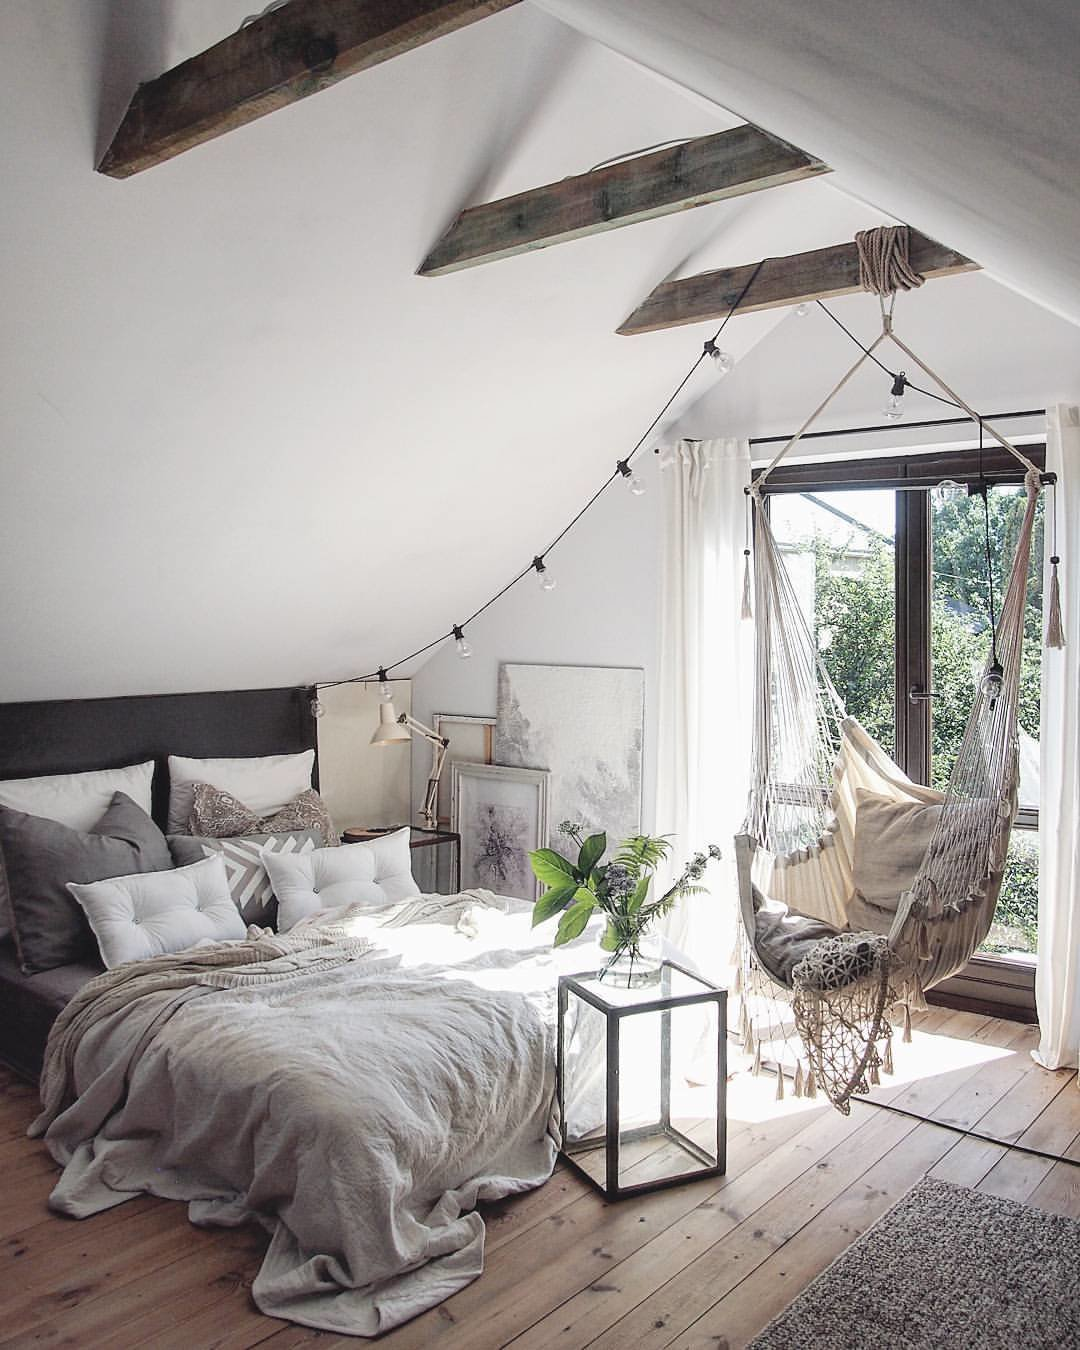 what is a papasan chair safavieh dining chairs canada 10 idées pour un espace cocooning chambre gris beige : inspiration style scandinave